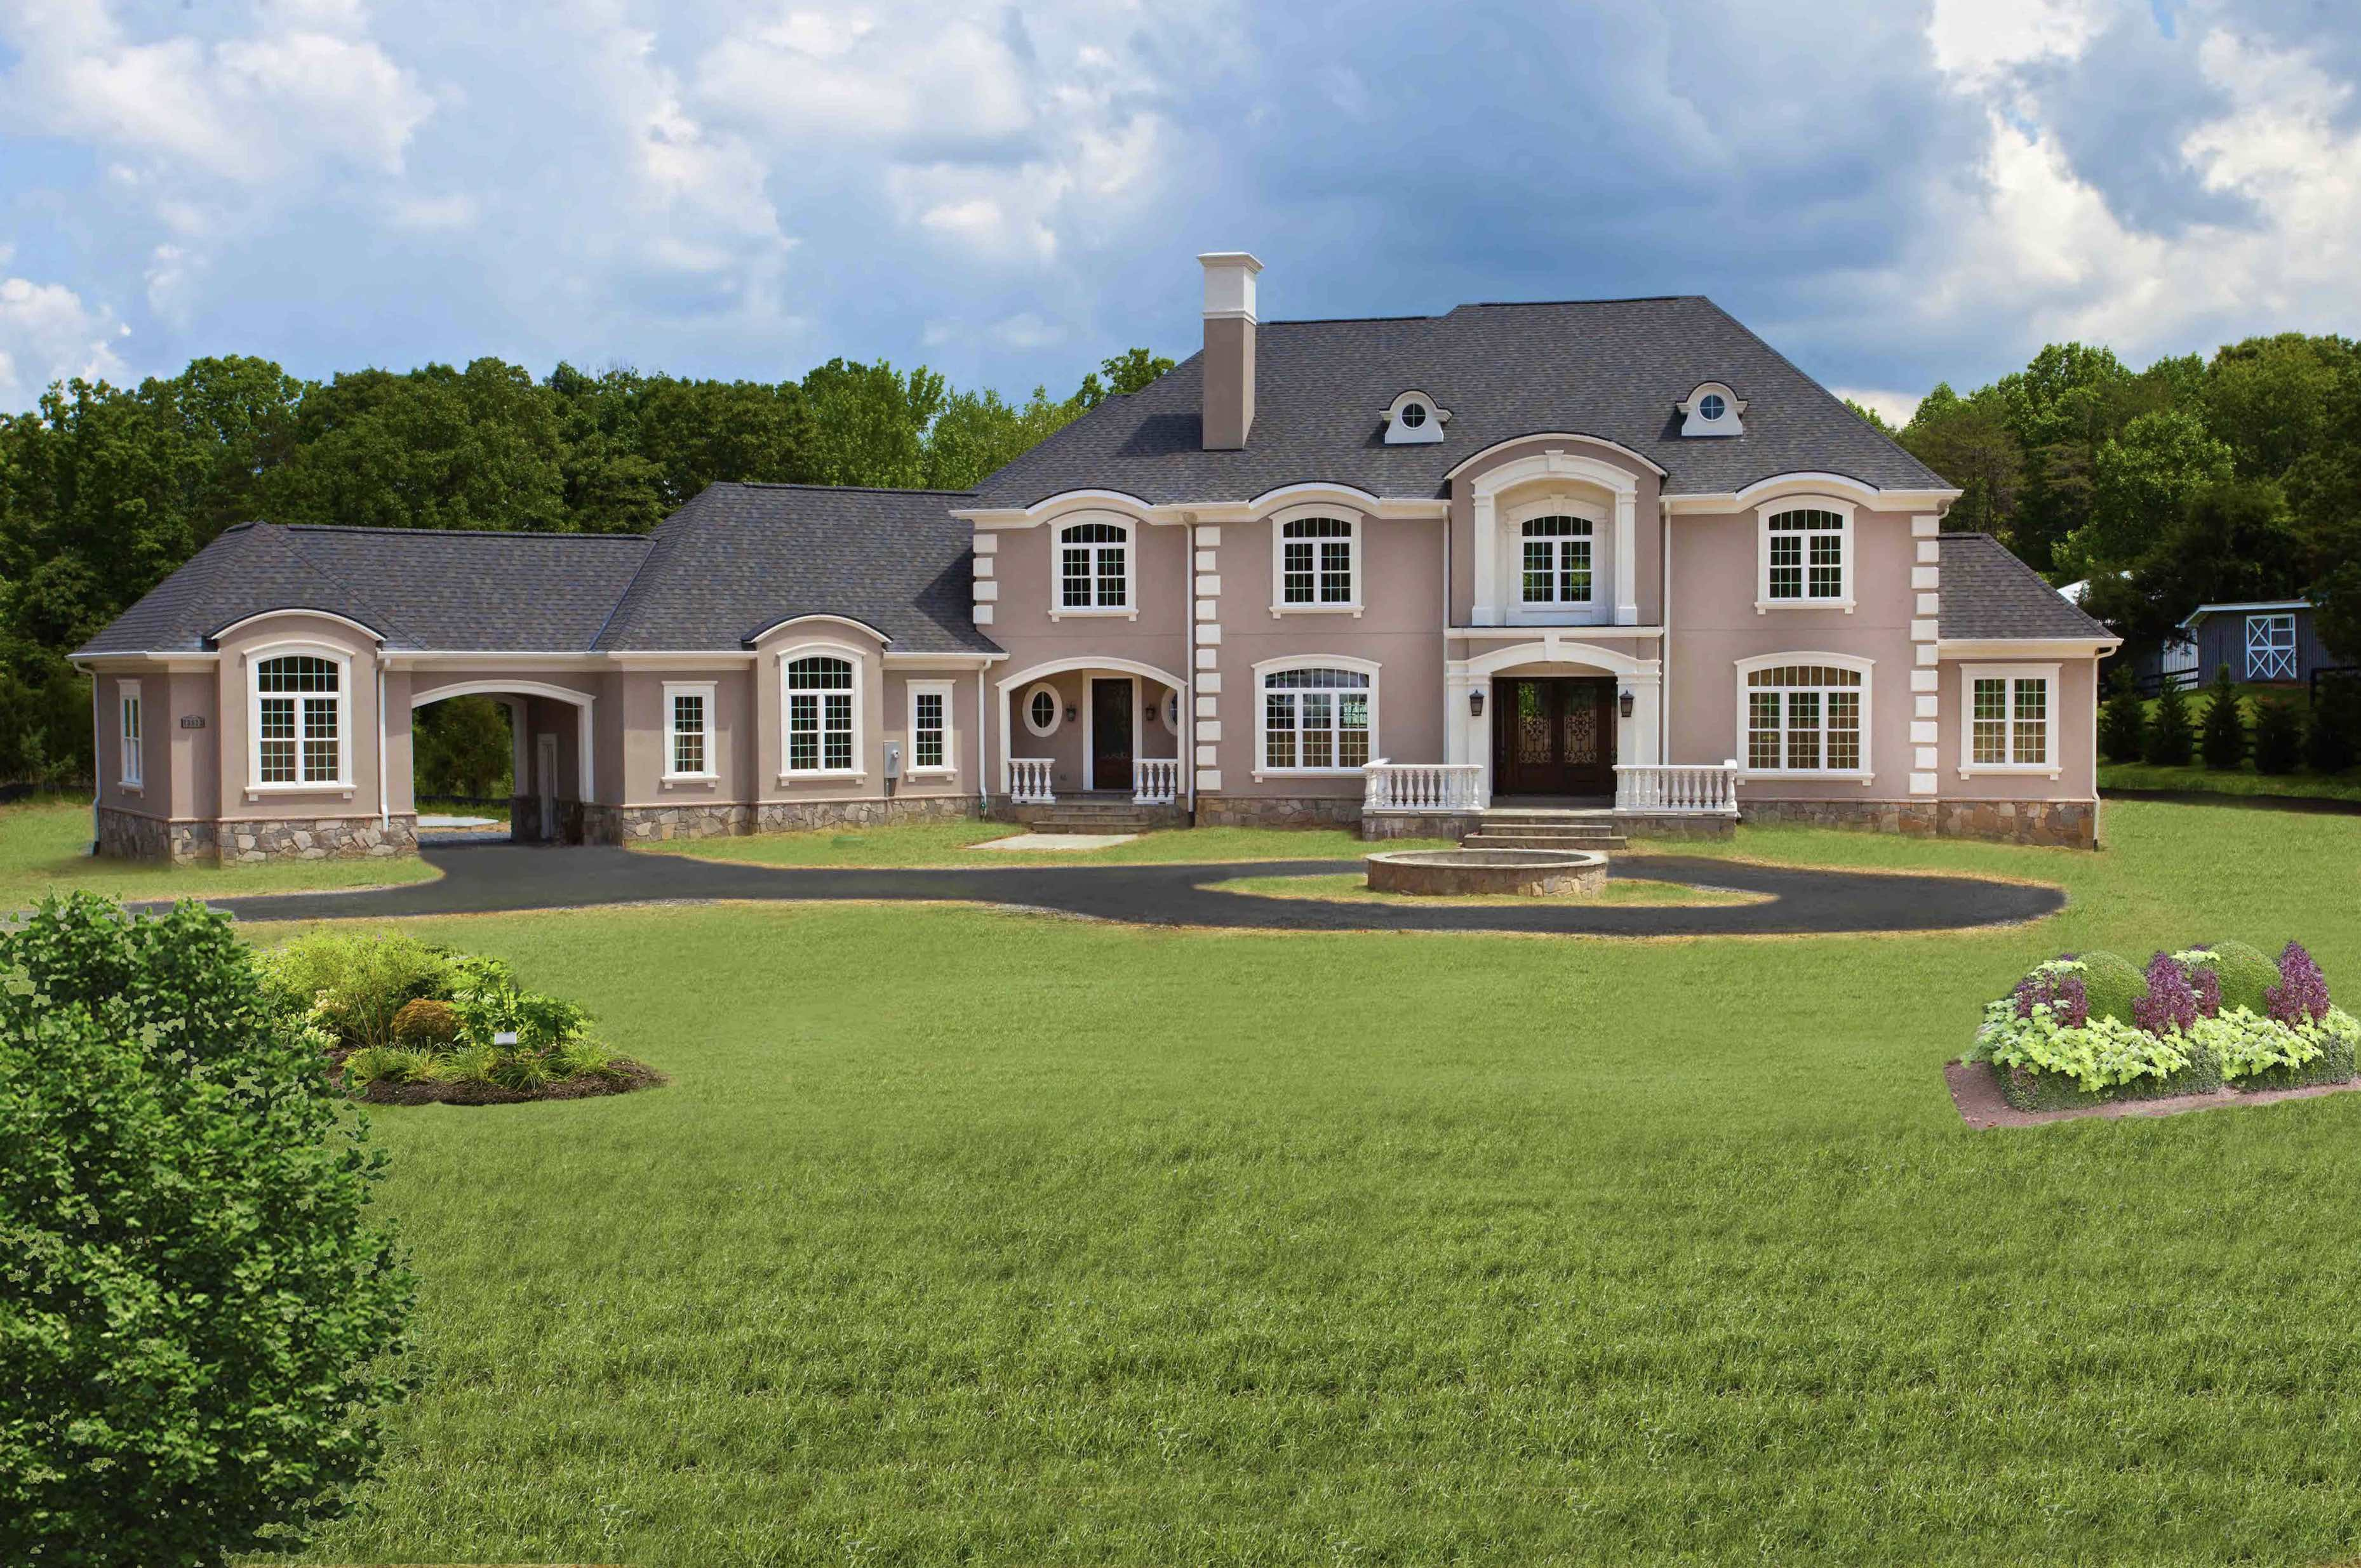 Single Family for Sale at By Botero Homes In Clifton-French Manor Iv -Future Construction Yates Ford Rd Clifton, Virginia 20124 United States